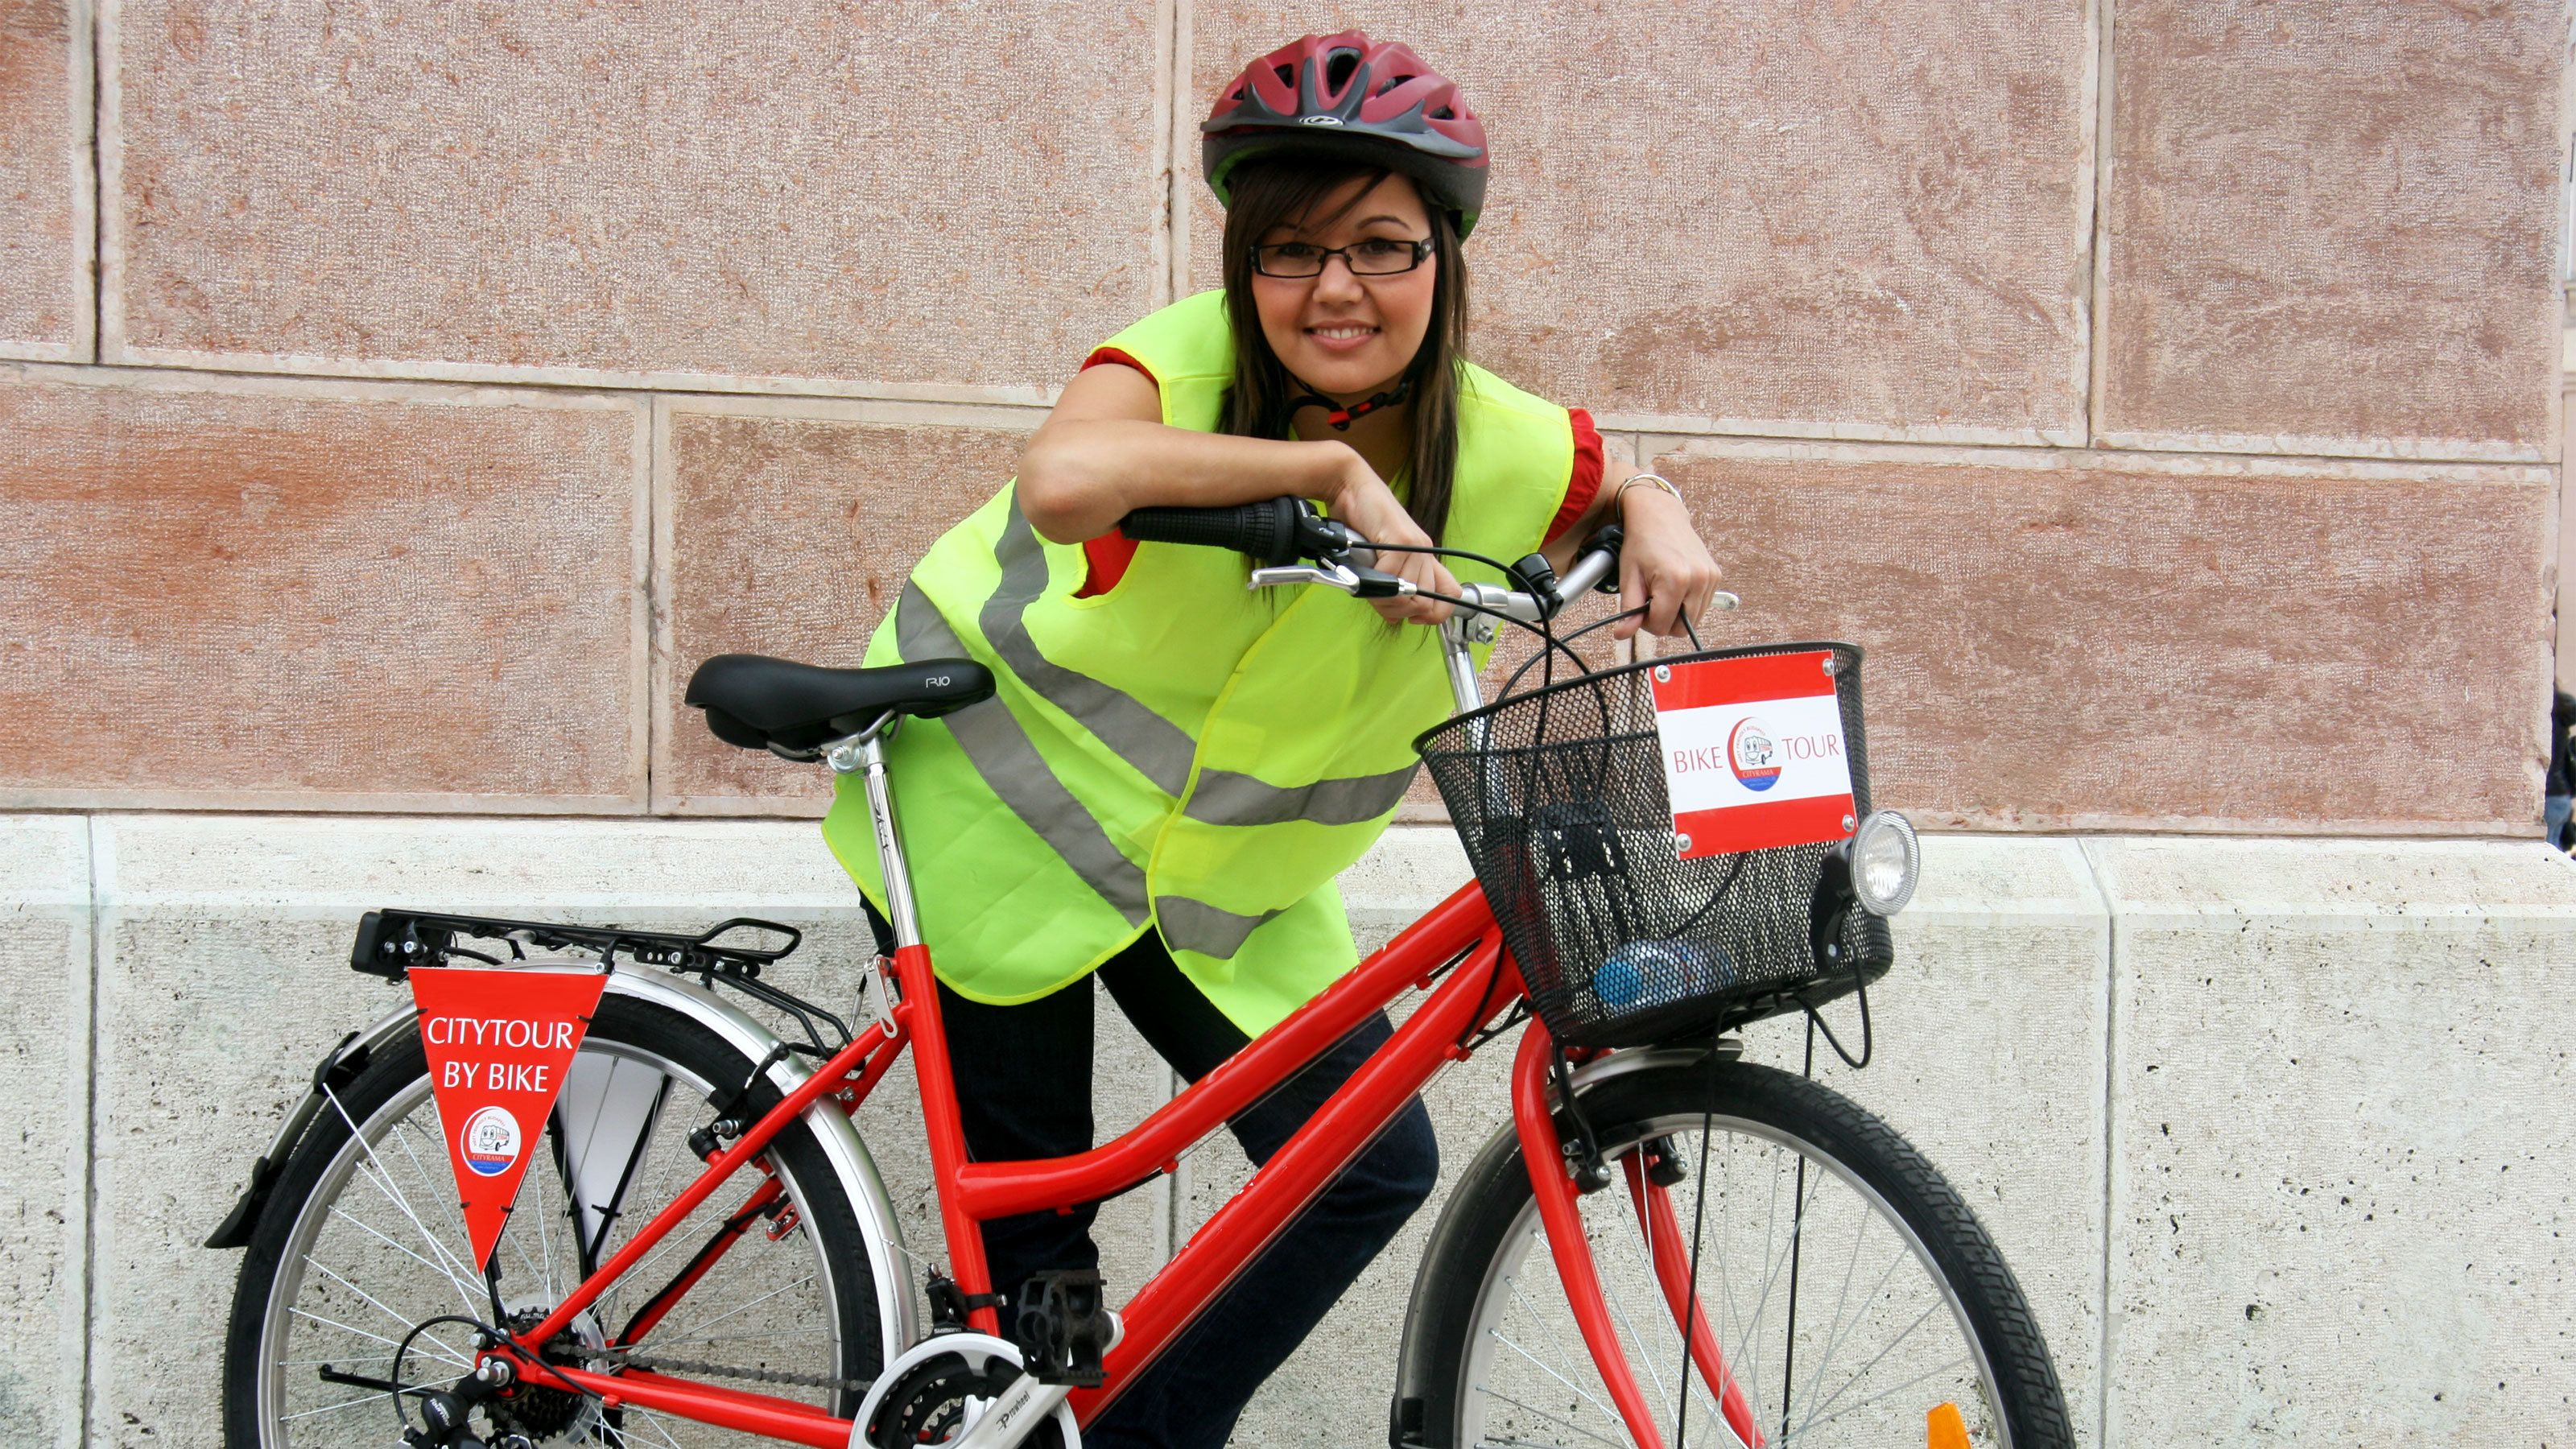 Woman excited to tour Budapest in bicycle